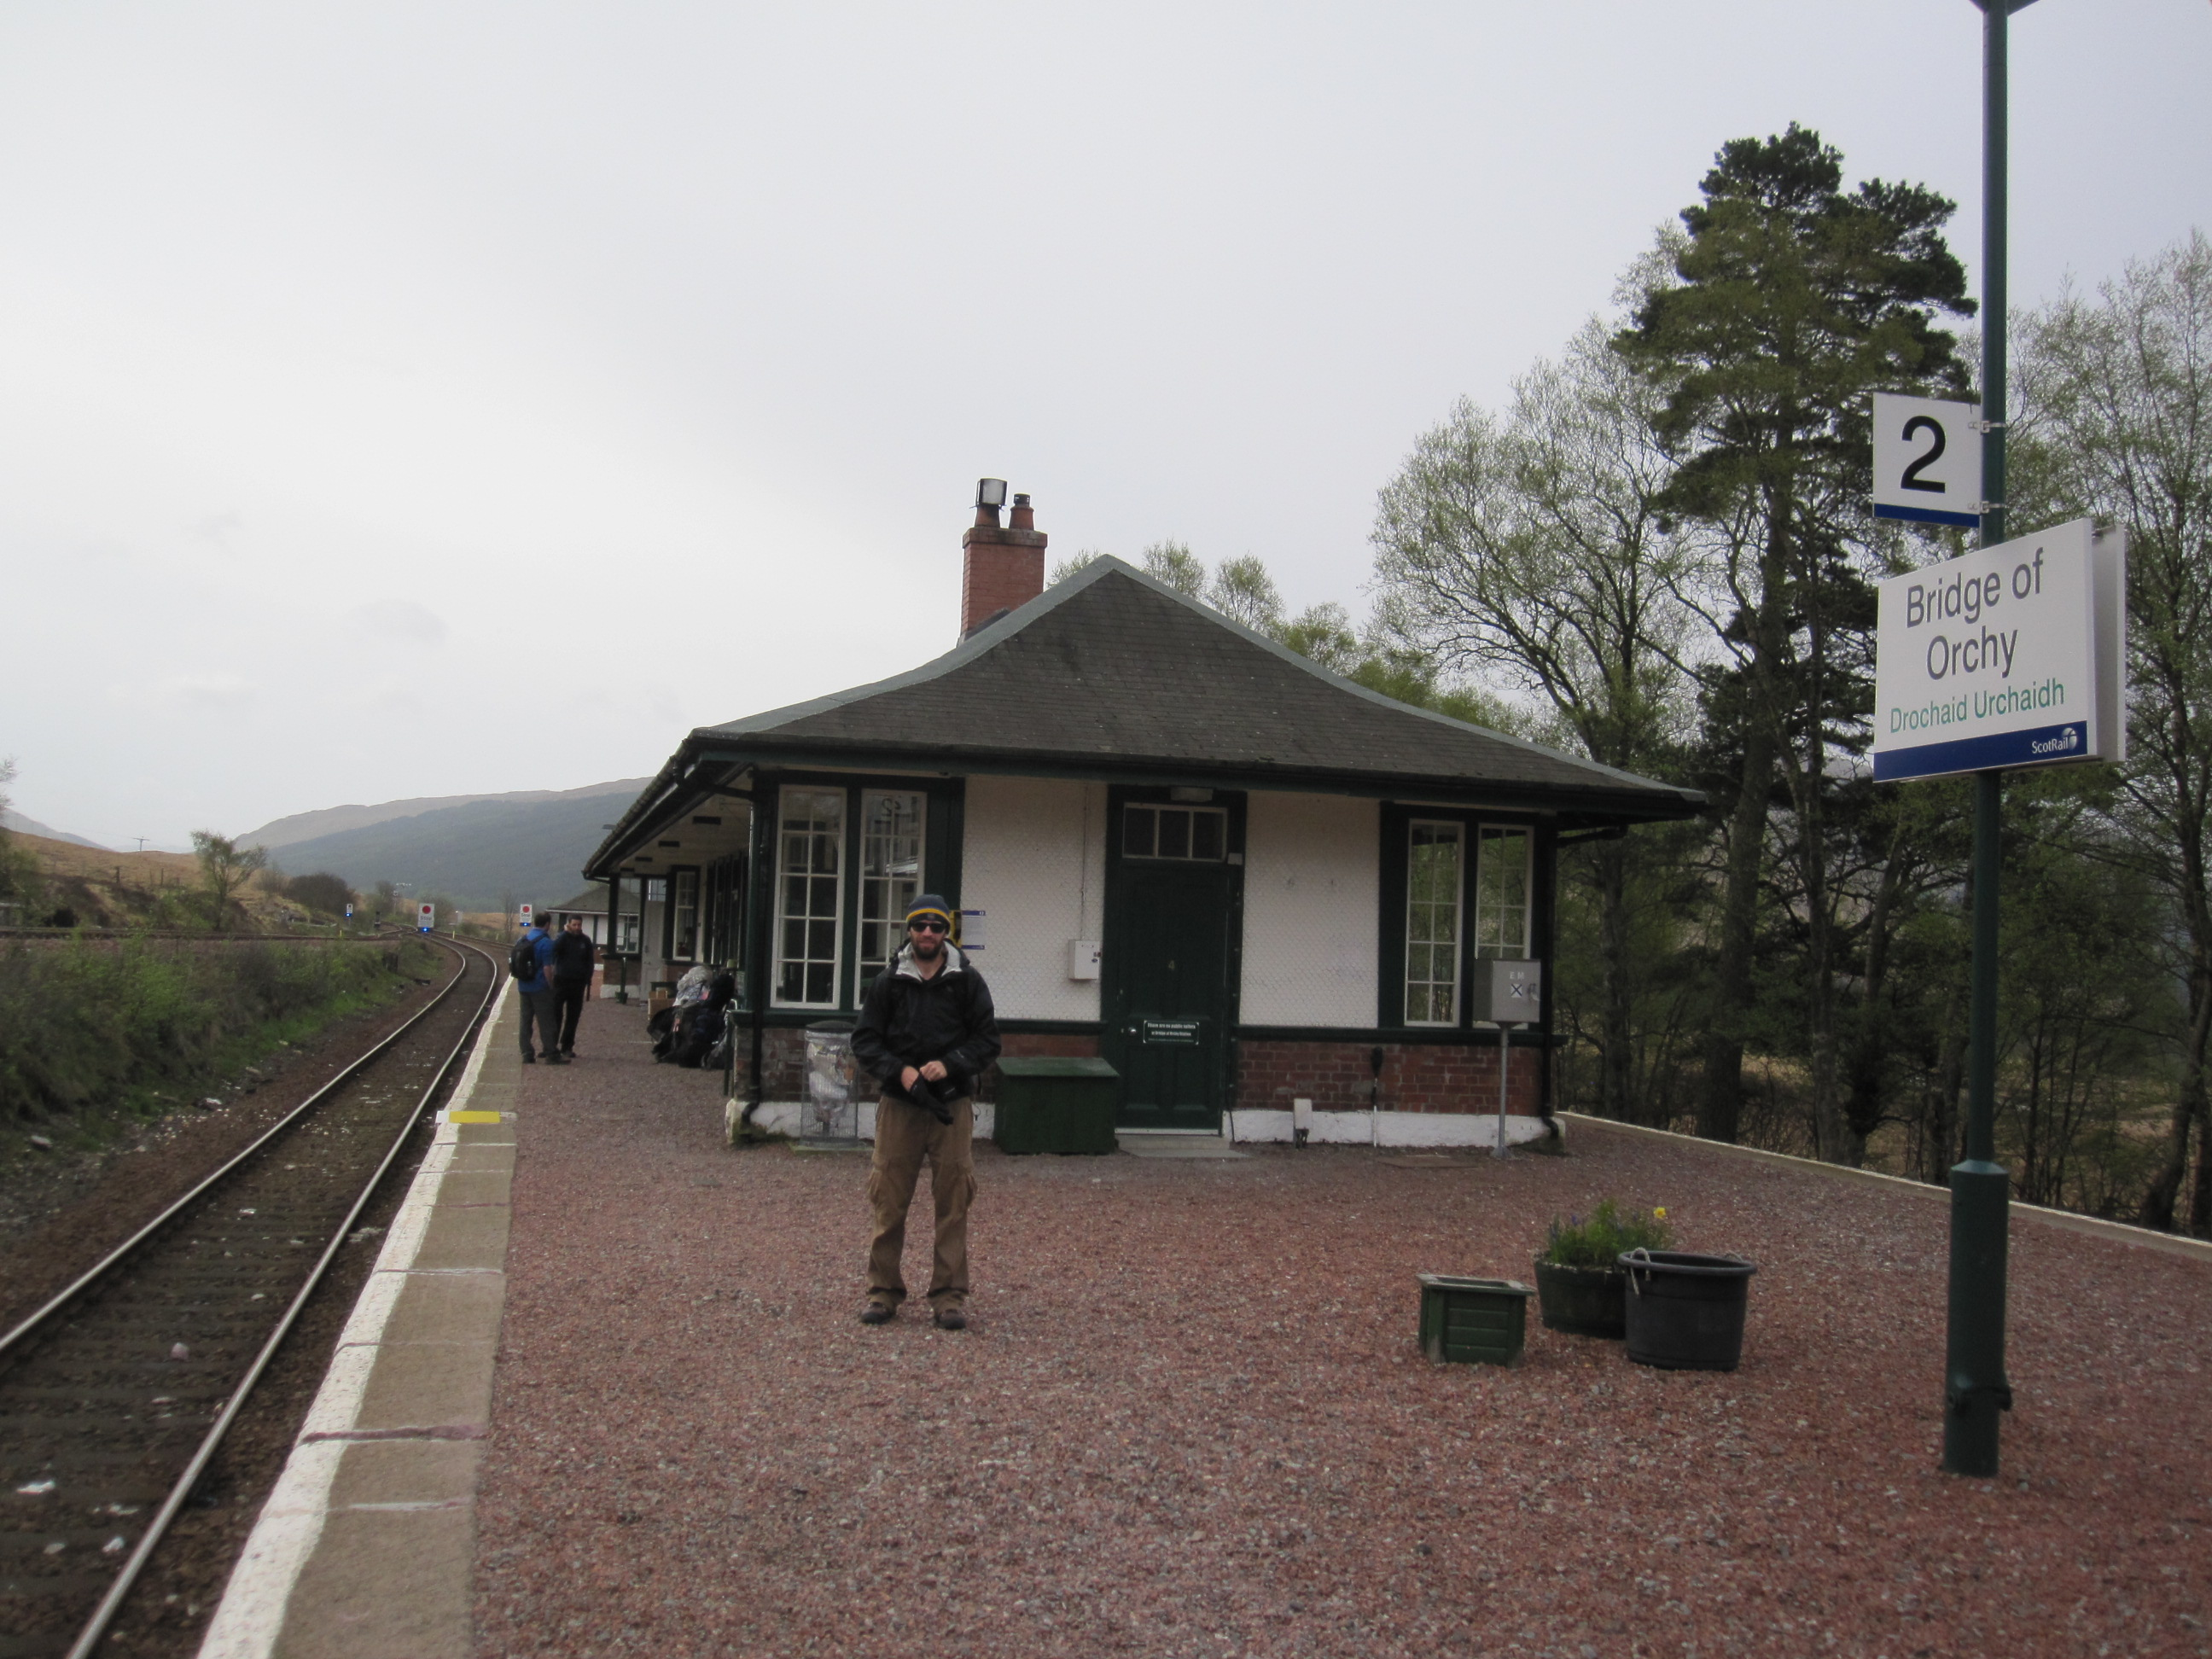 Bridge of Orchy bunkhouse/train station